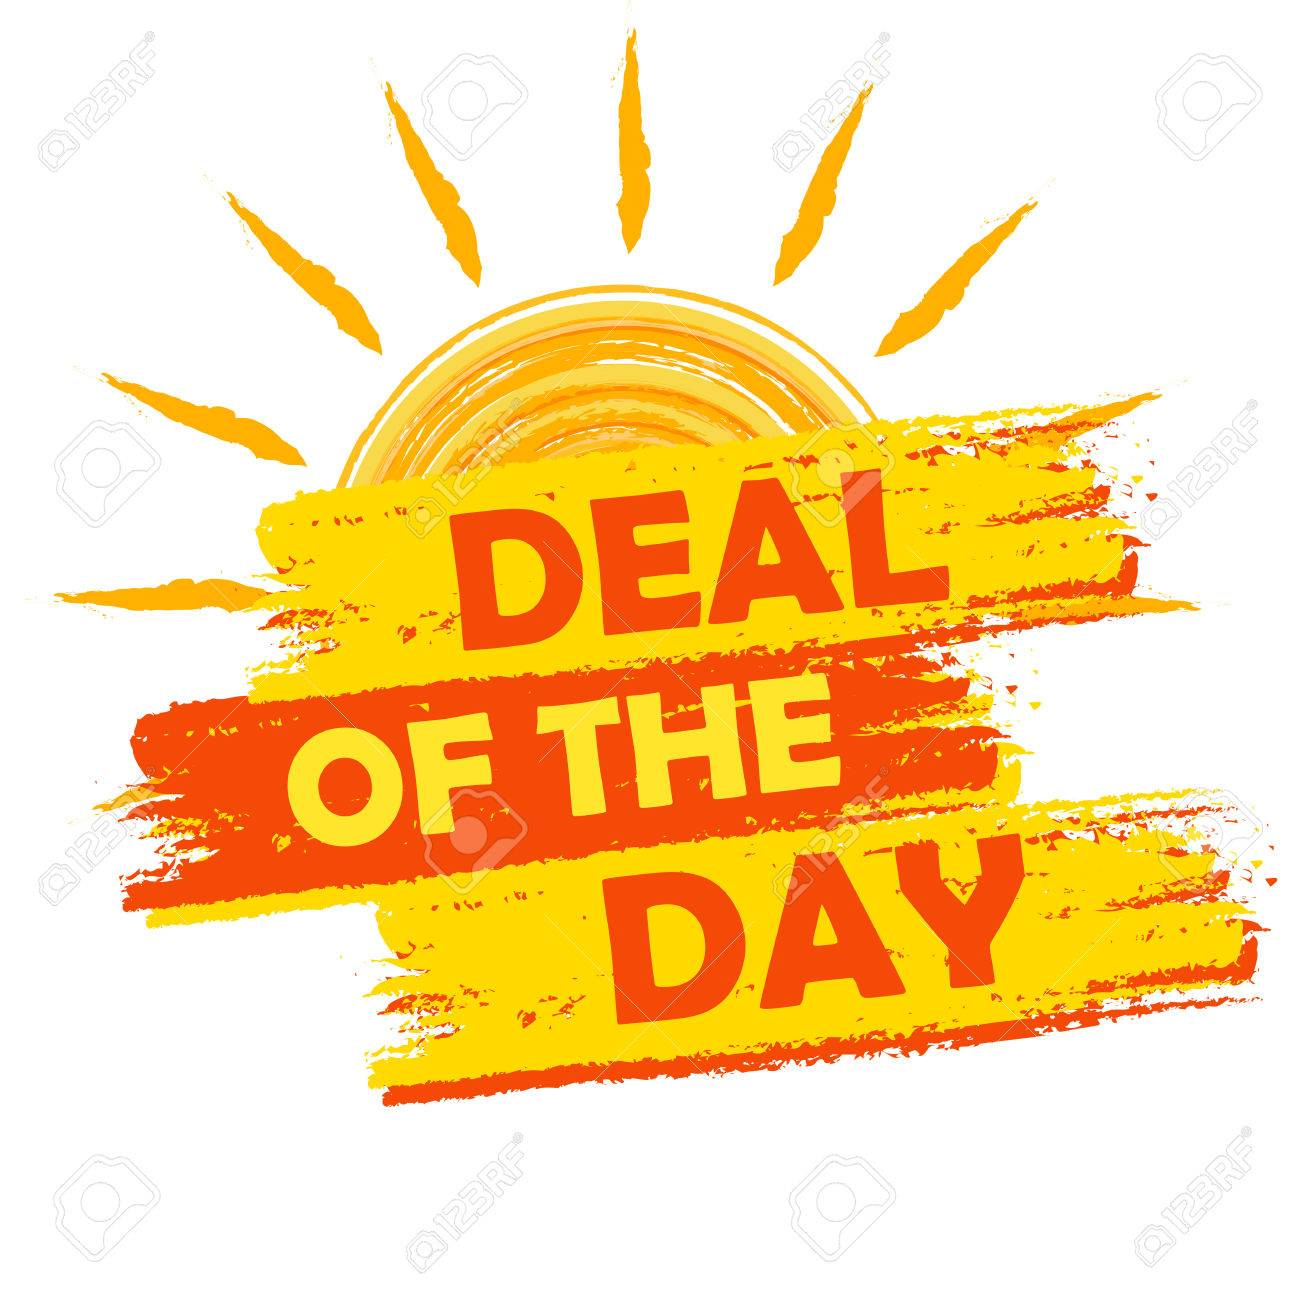 2d66ea70cb05 Stock Photo - summer deal of the day banner - text in yellow and orange  drawn label with sun symbol